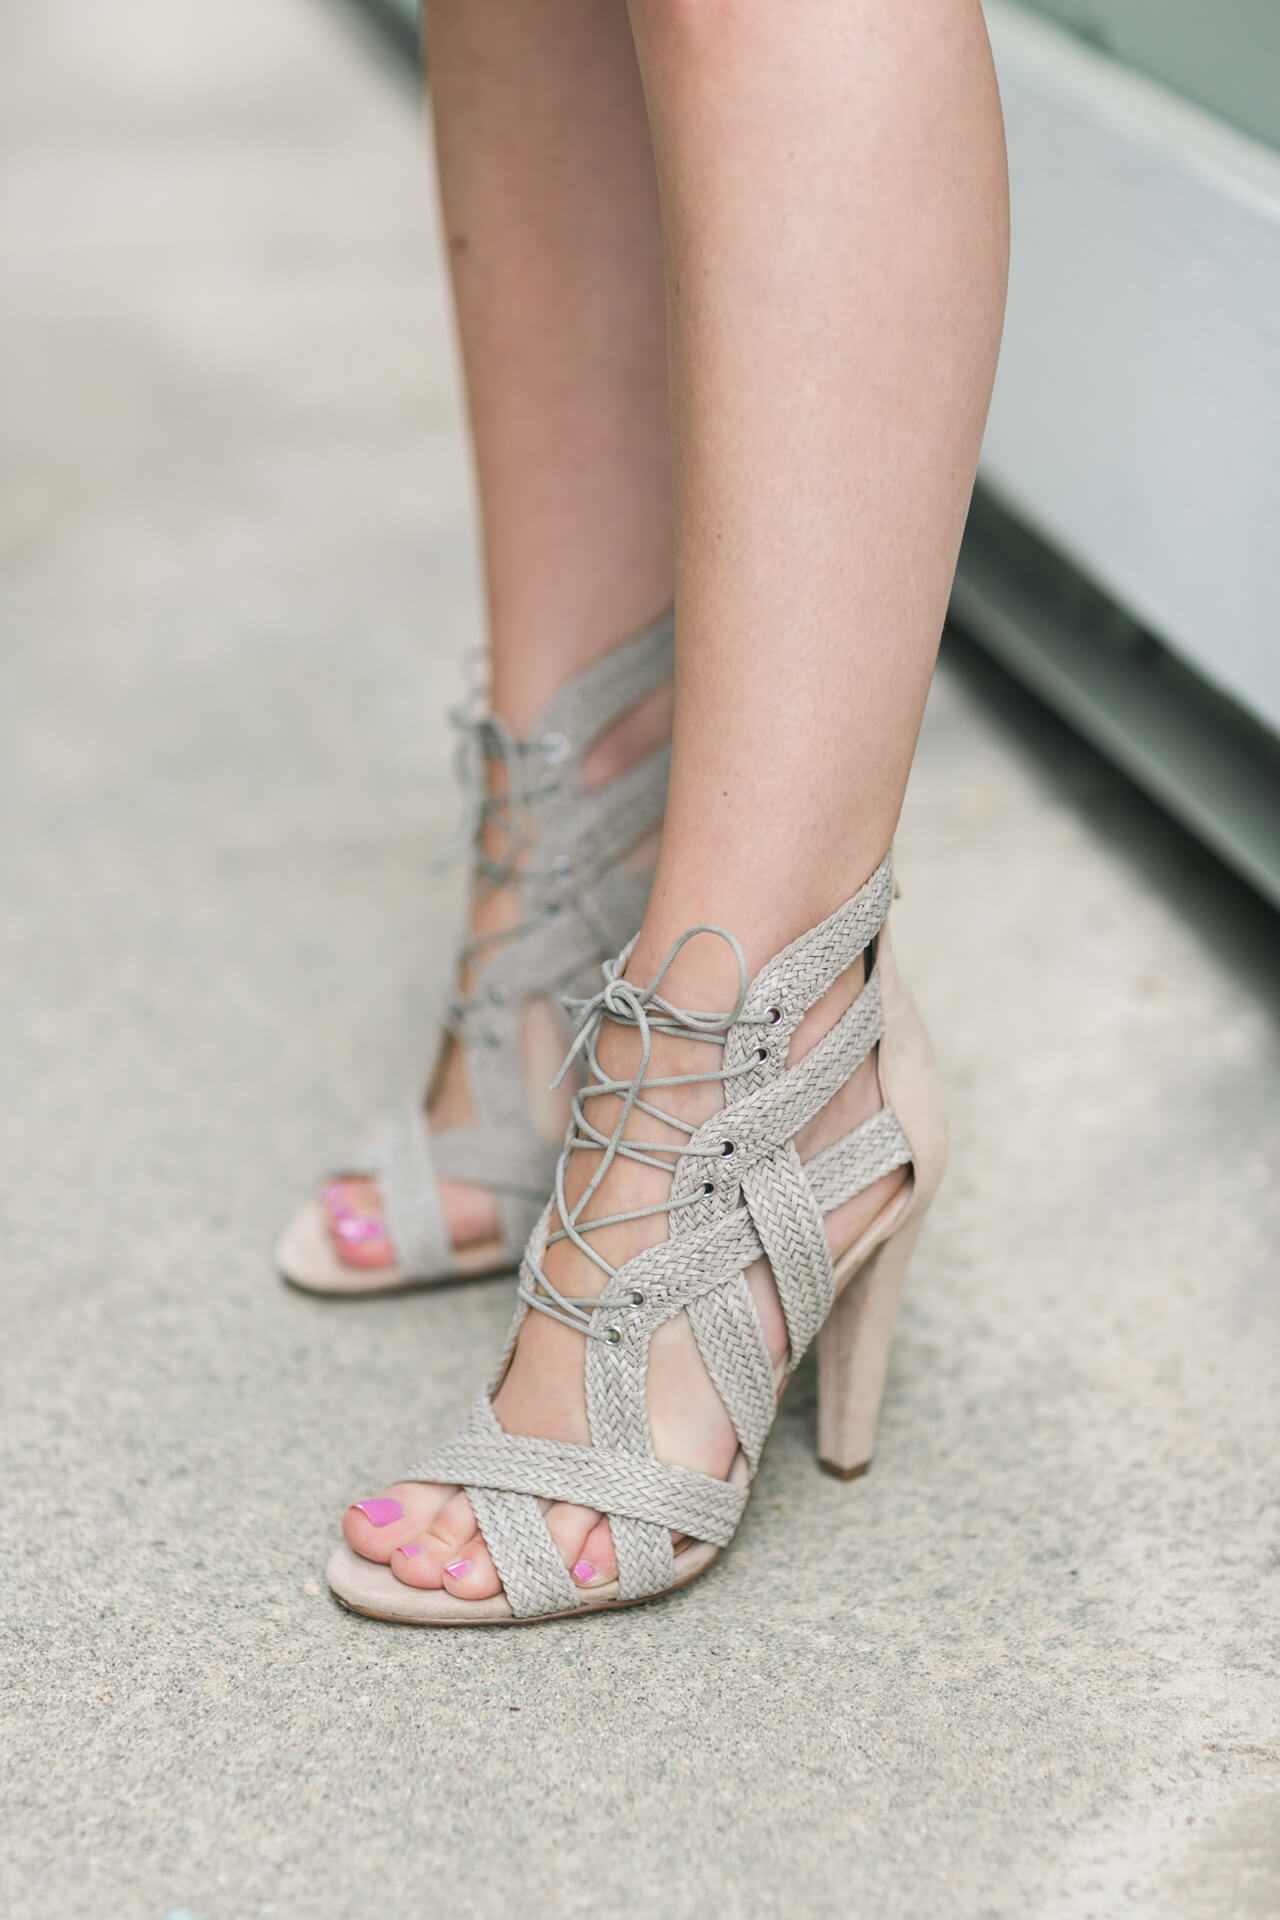 woven lace up sandal heels from banana republic